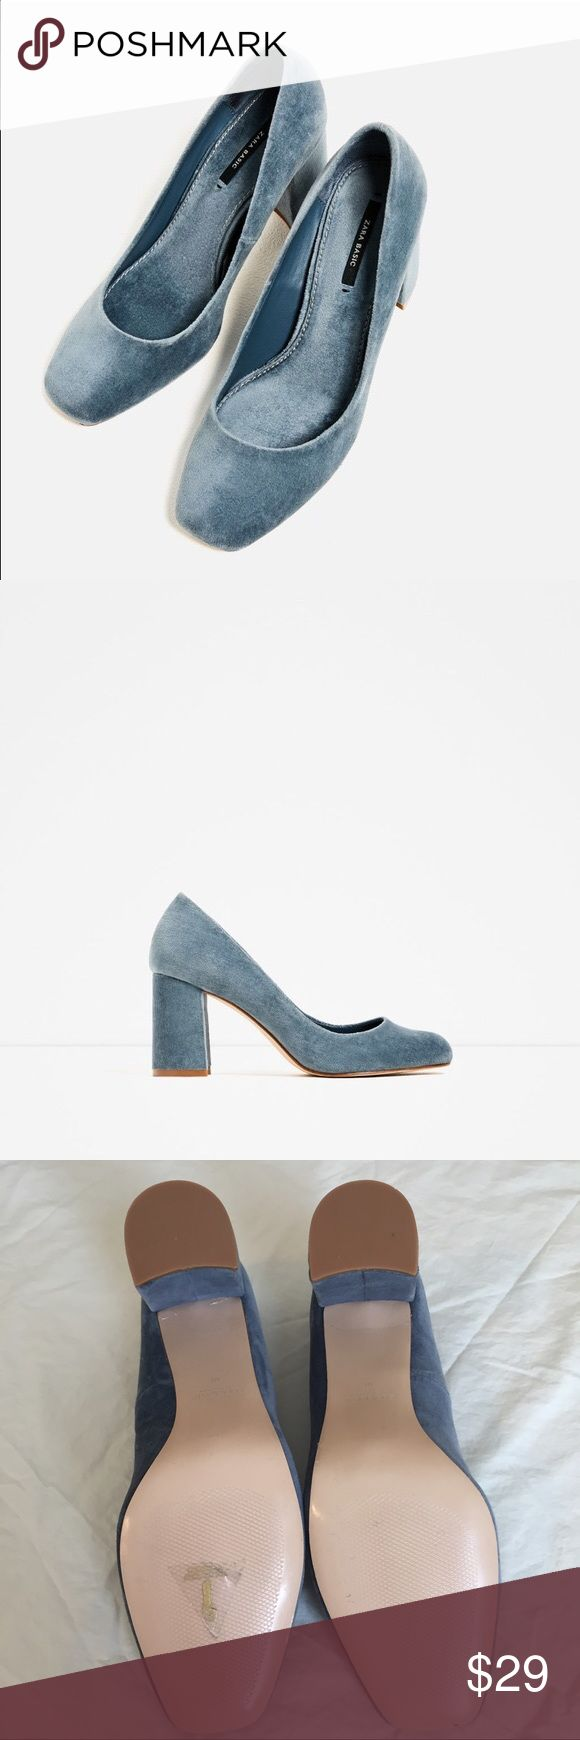 """Zara Smoky Blue Velvet High Heel Pumps Size 40 Only worn inside a few times to try on with outfits. Zara Basic brand. Smoke free home. Heel Height is 3"""". Zara site states size 40 is a US 9 Zara Shoes Heels"""